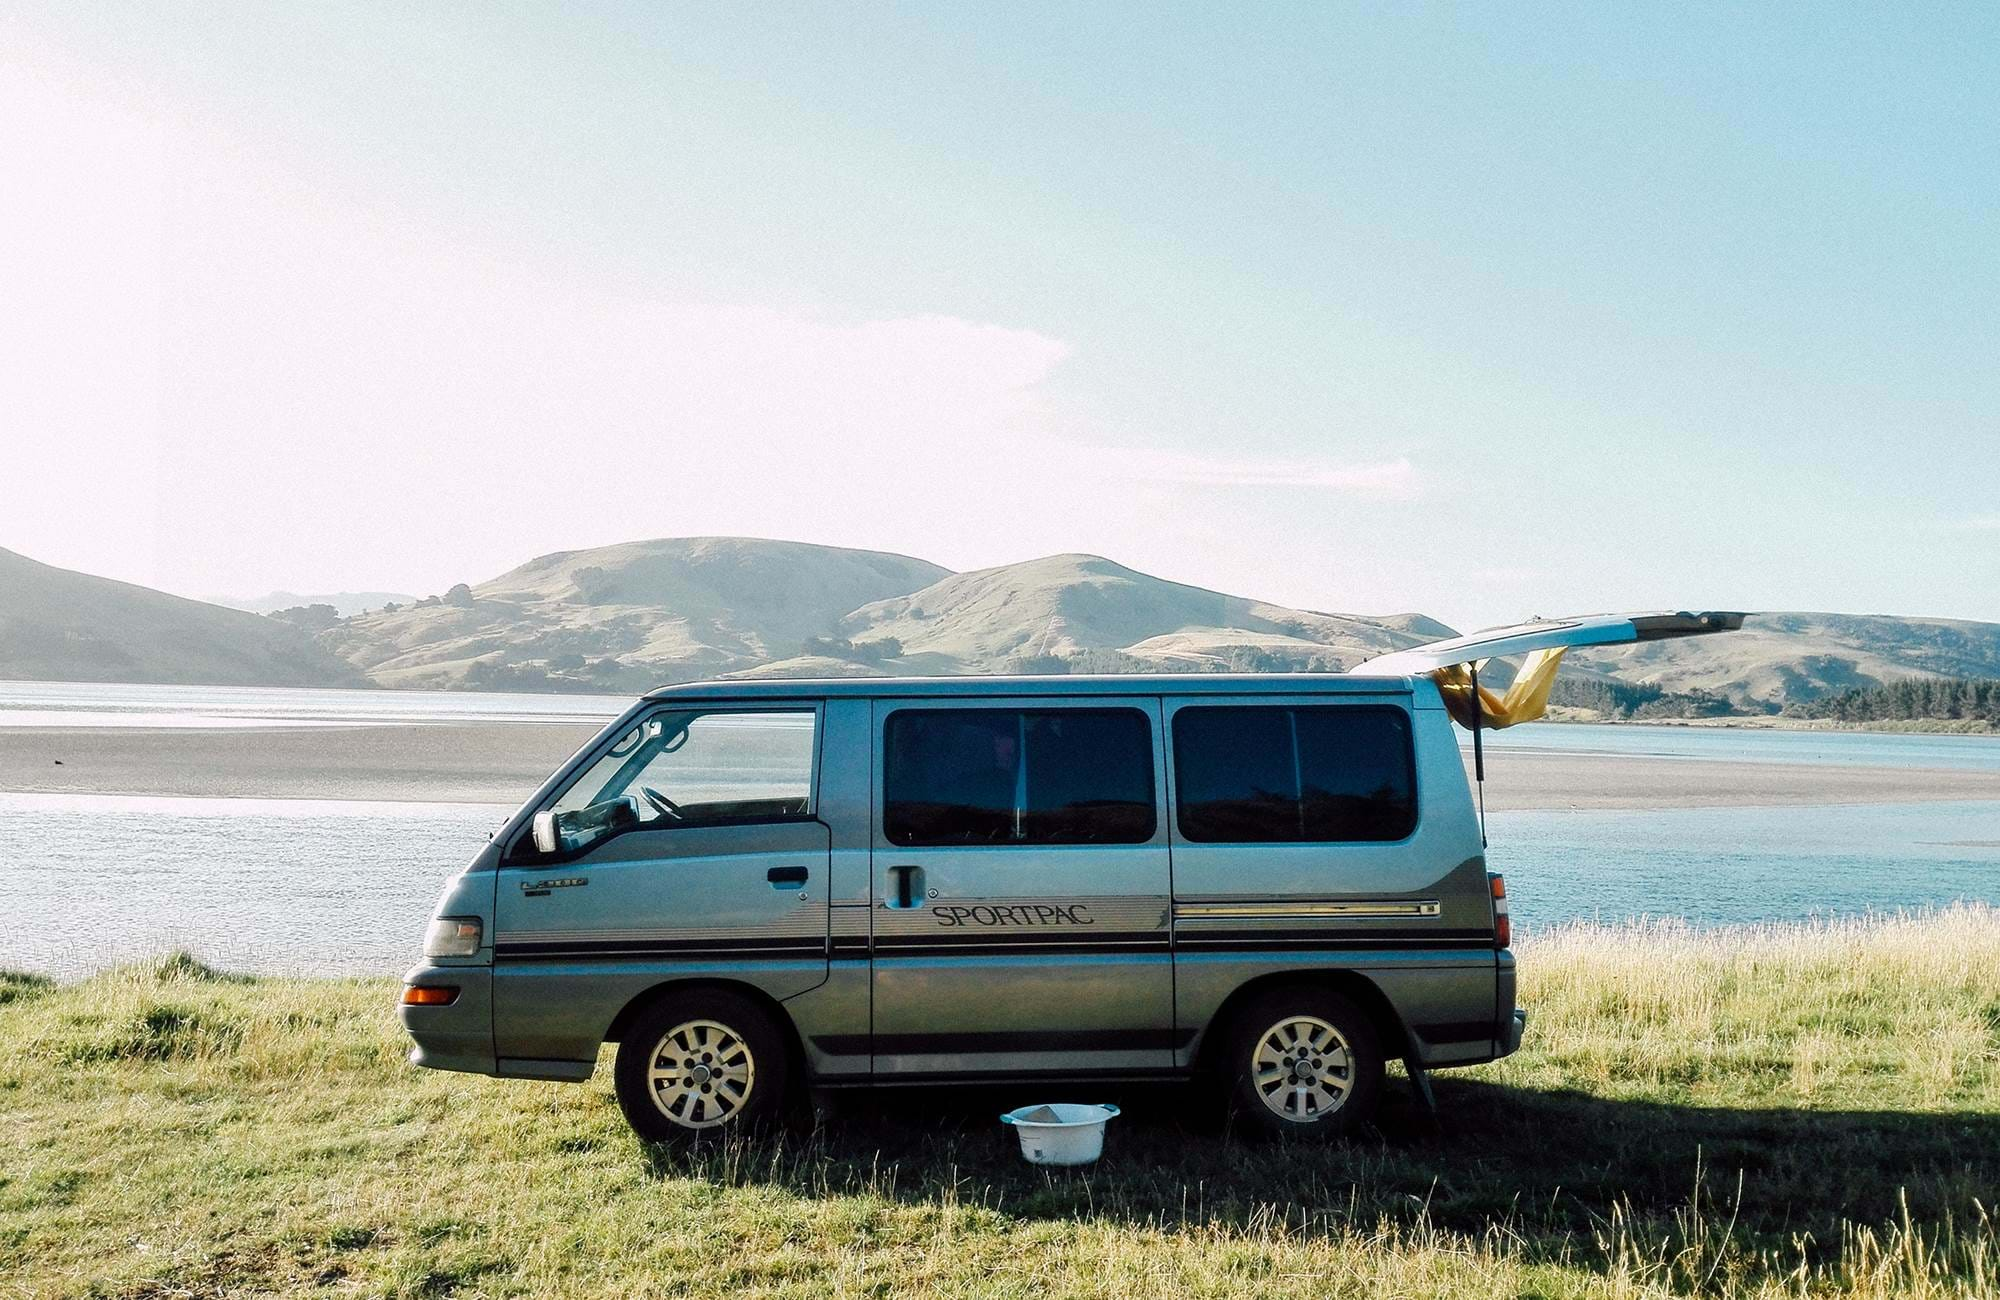 Campervan in New Zealand